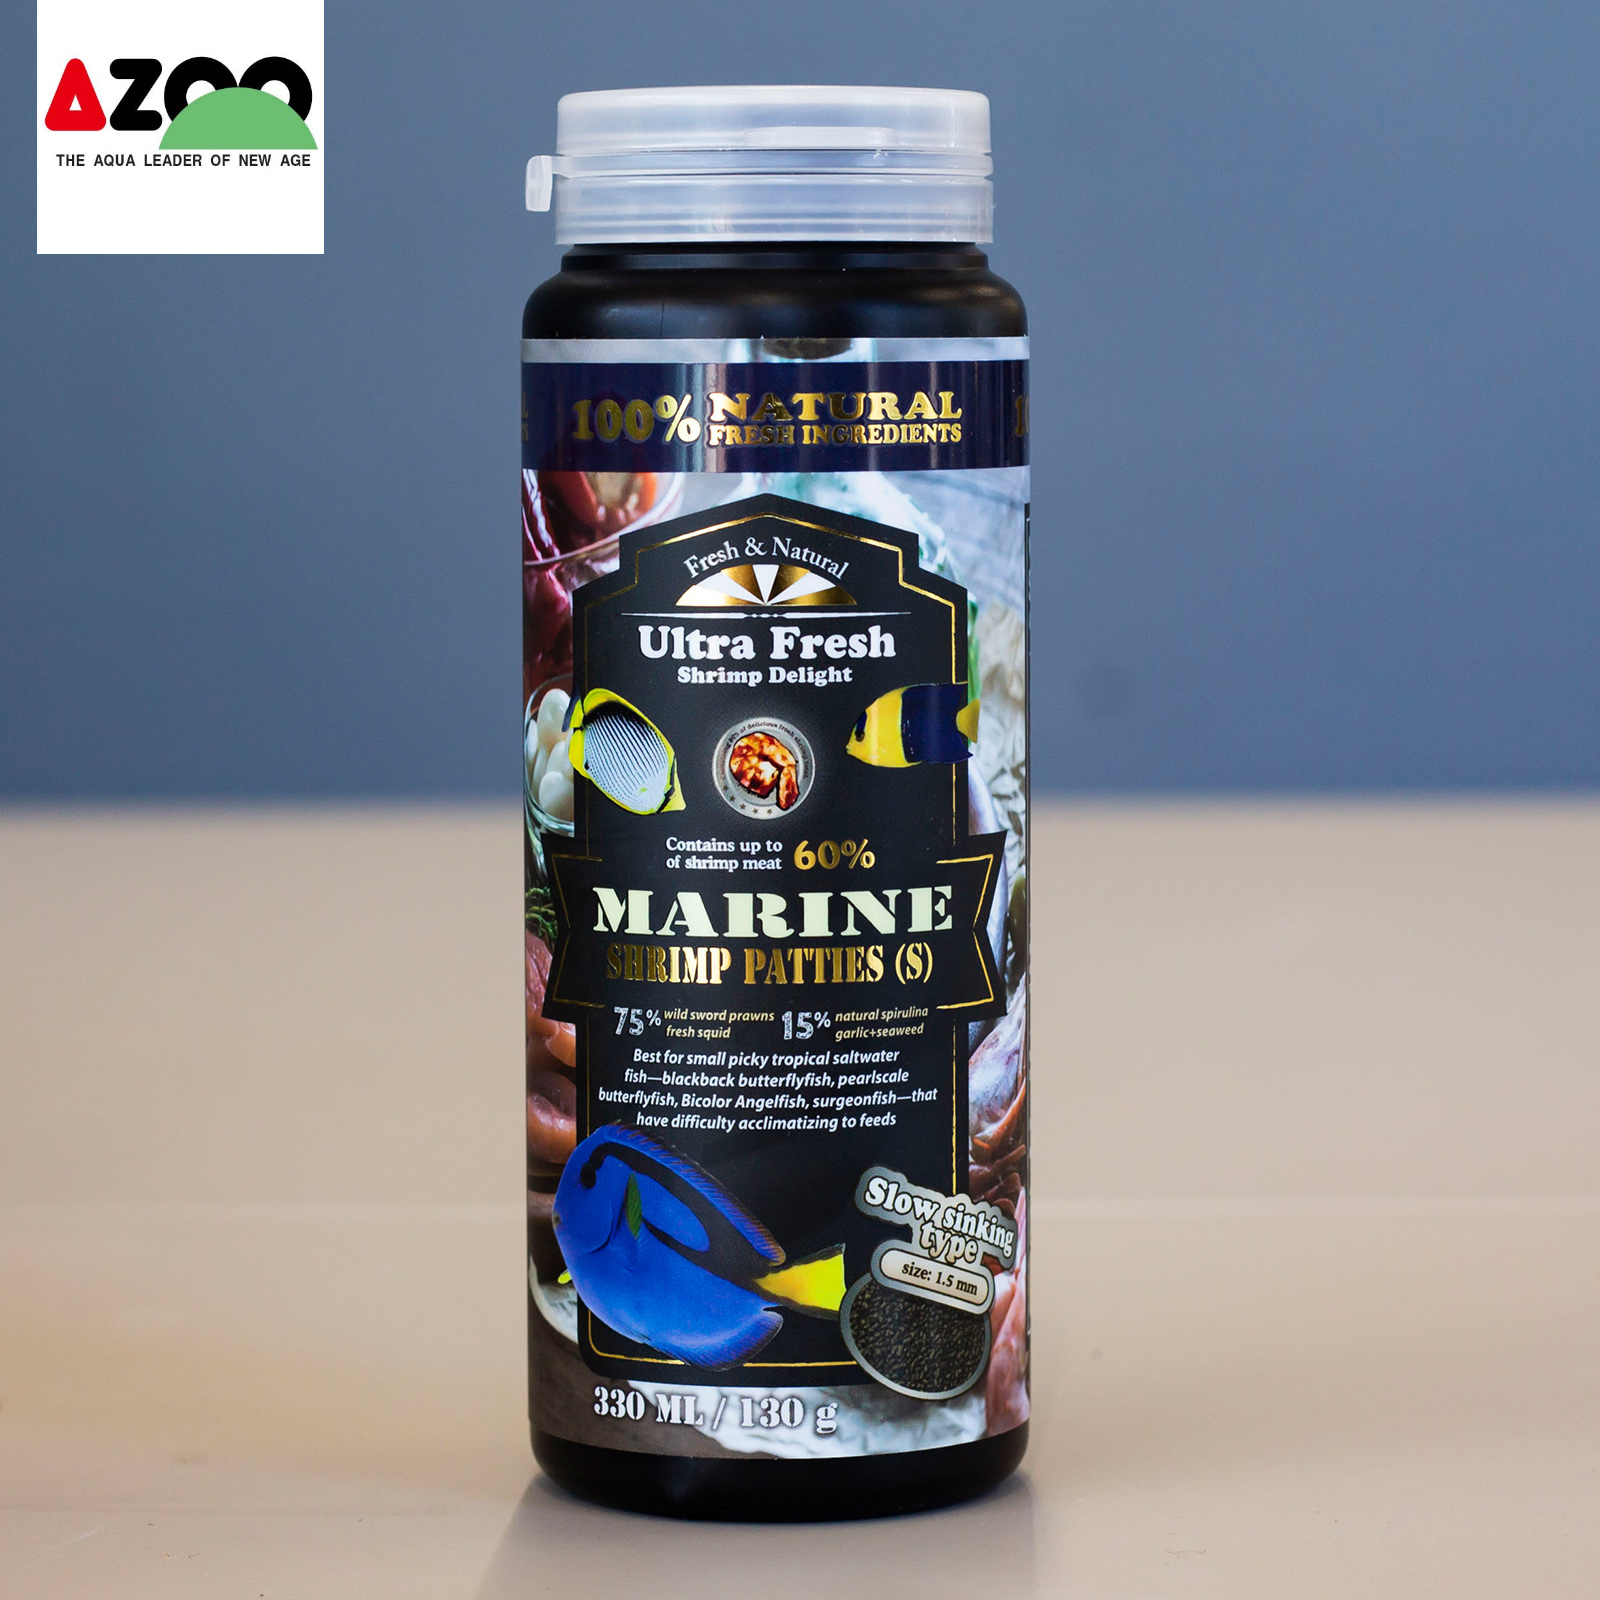 AZOO Marine Shrimp Patties(S) 330ml/130g